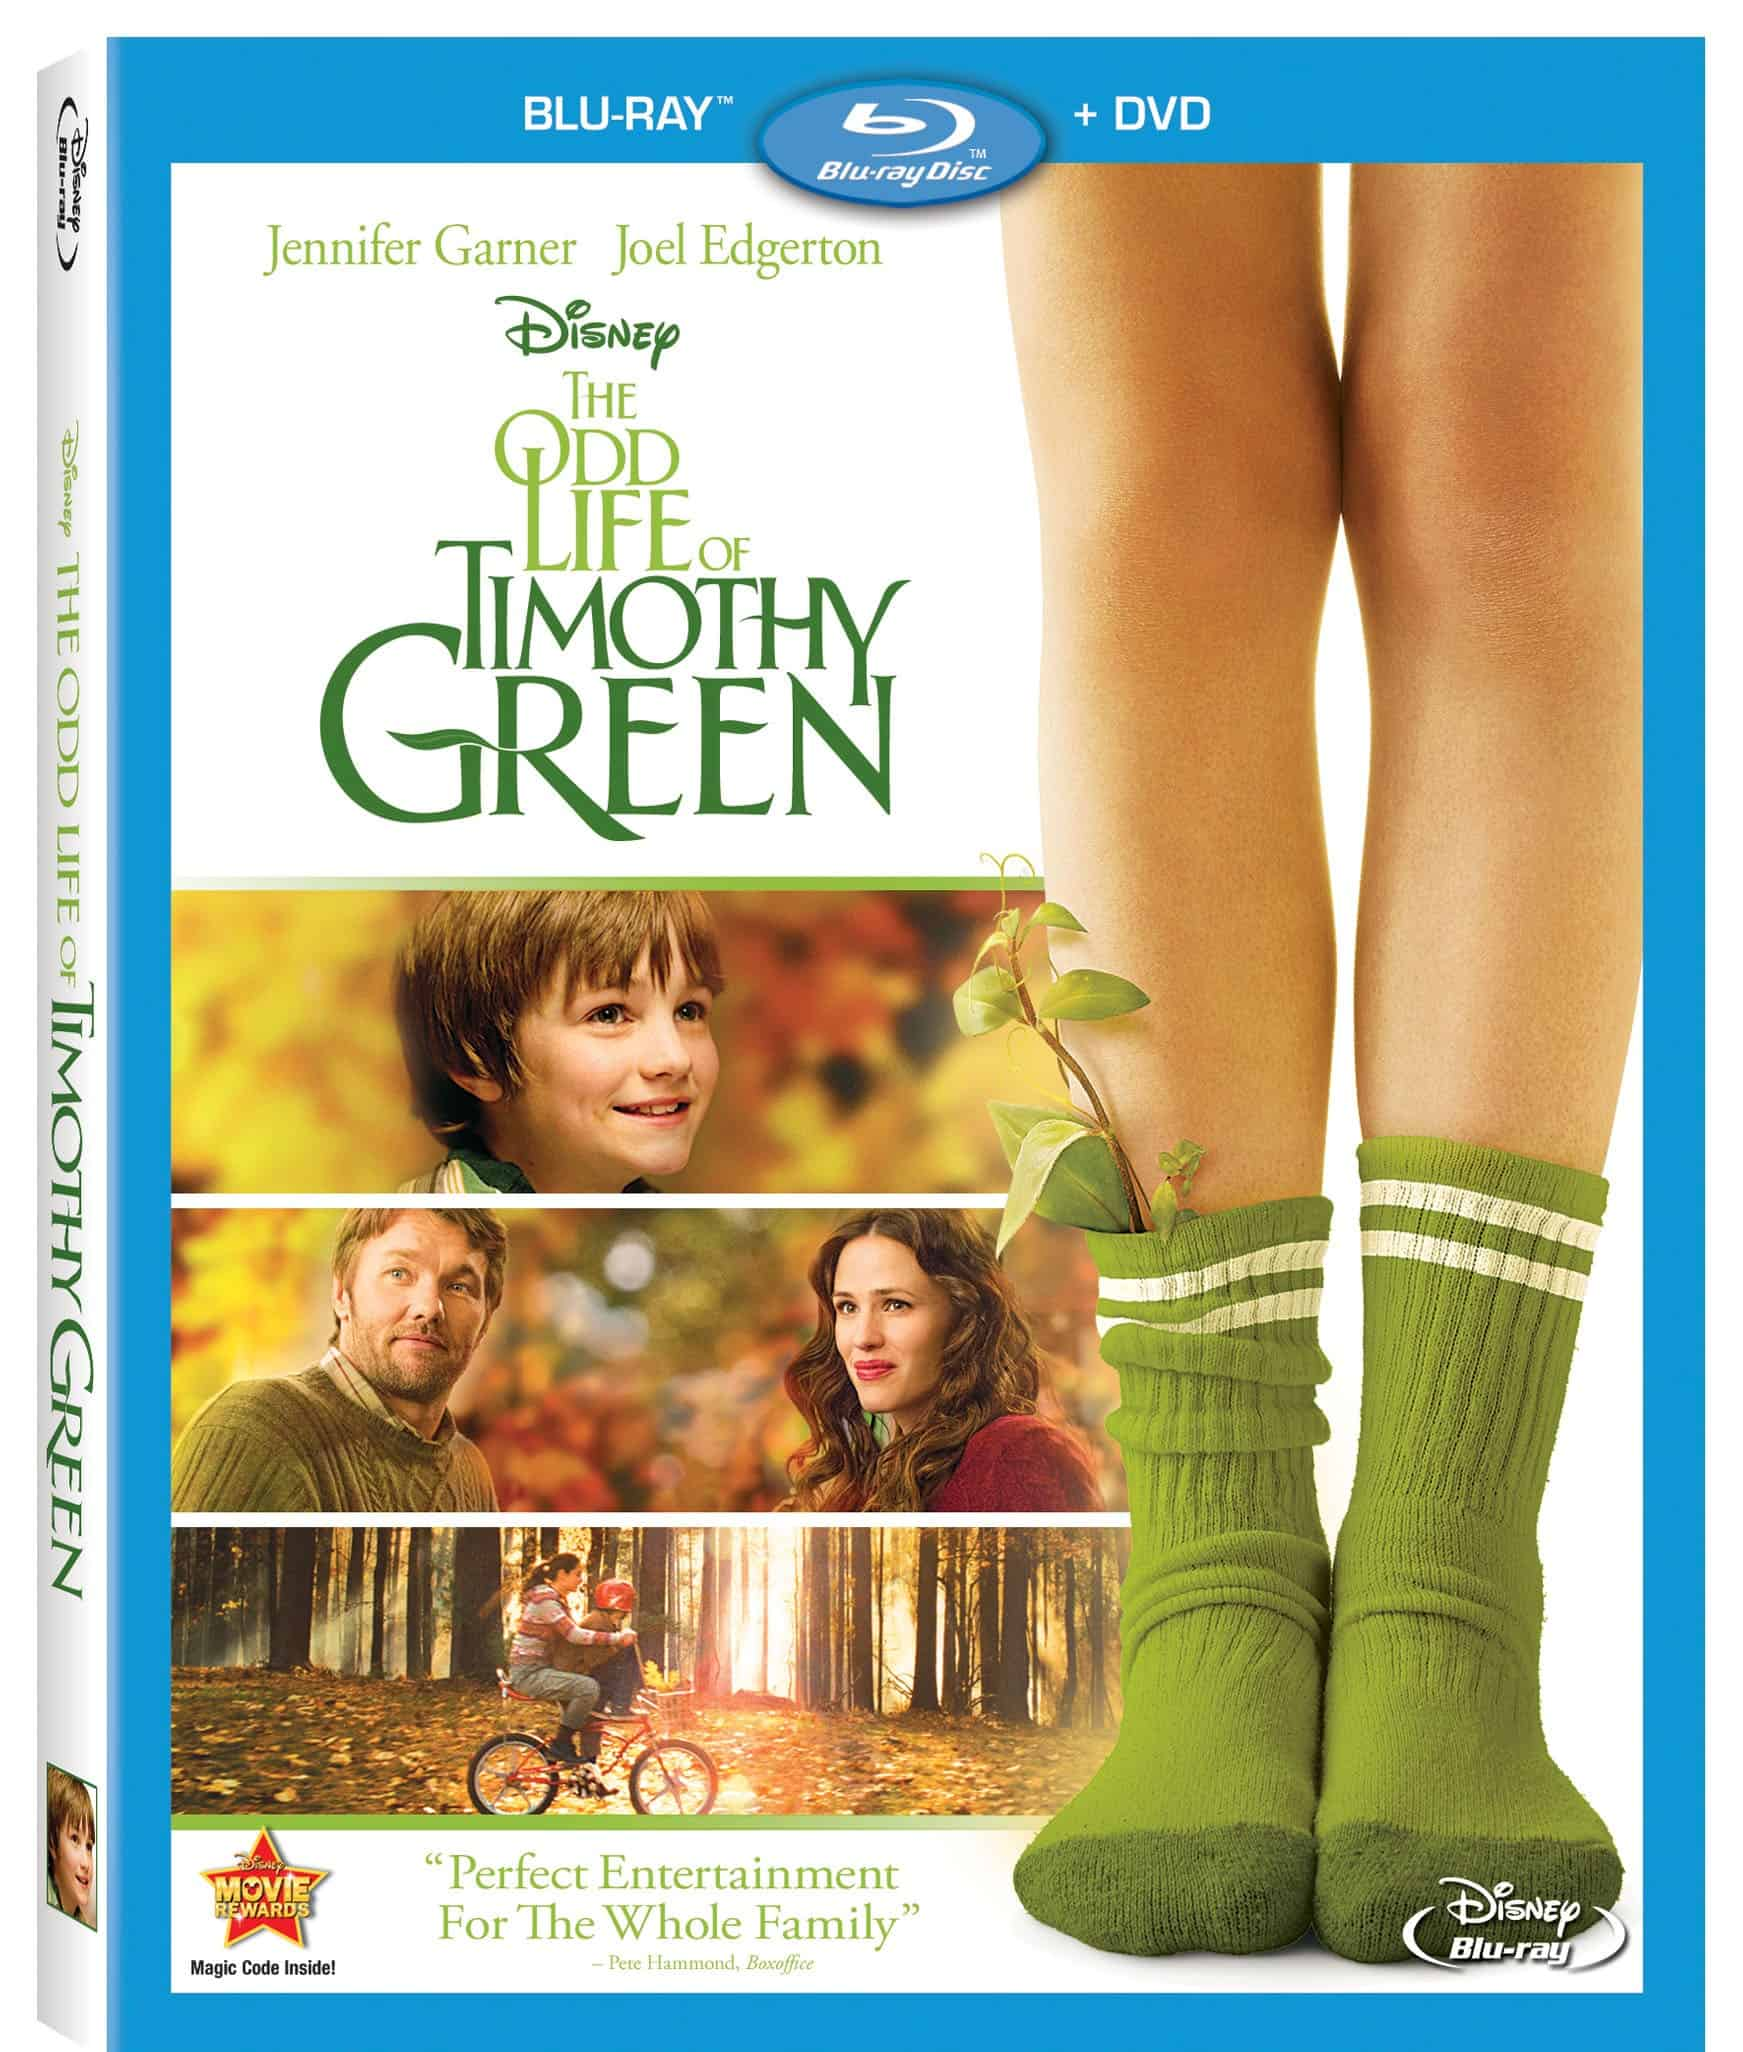 The Odd Life of Timothy Green DVD Giveaway